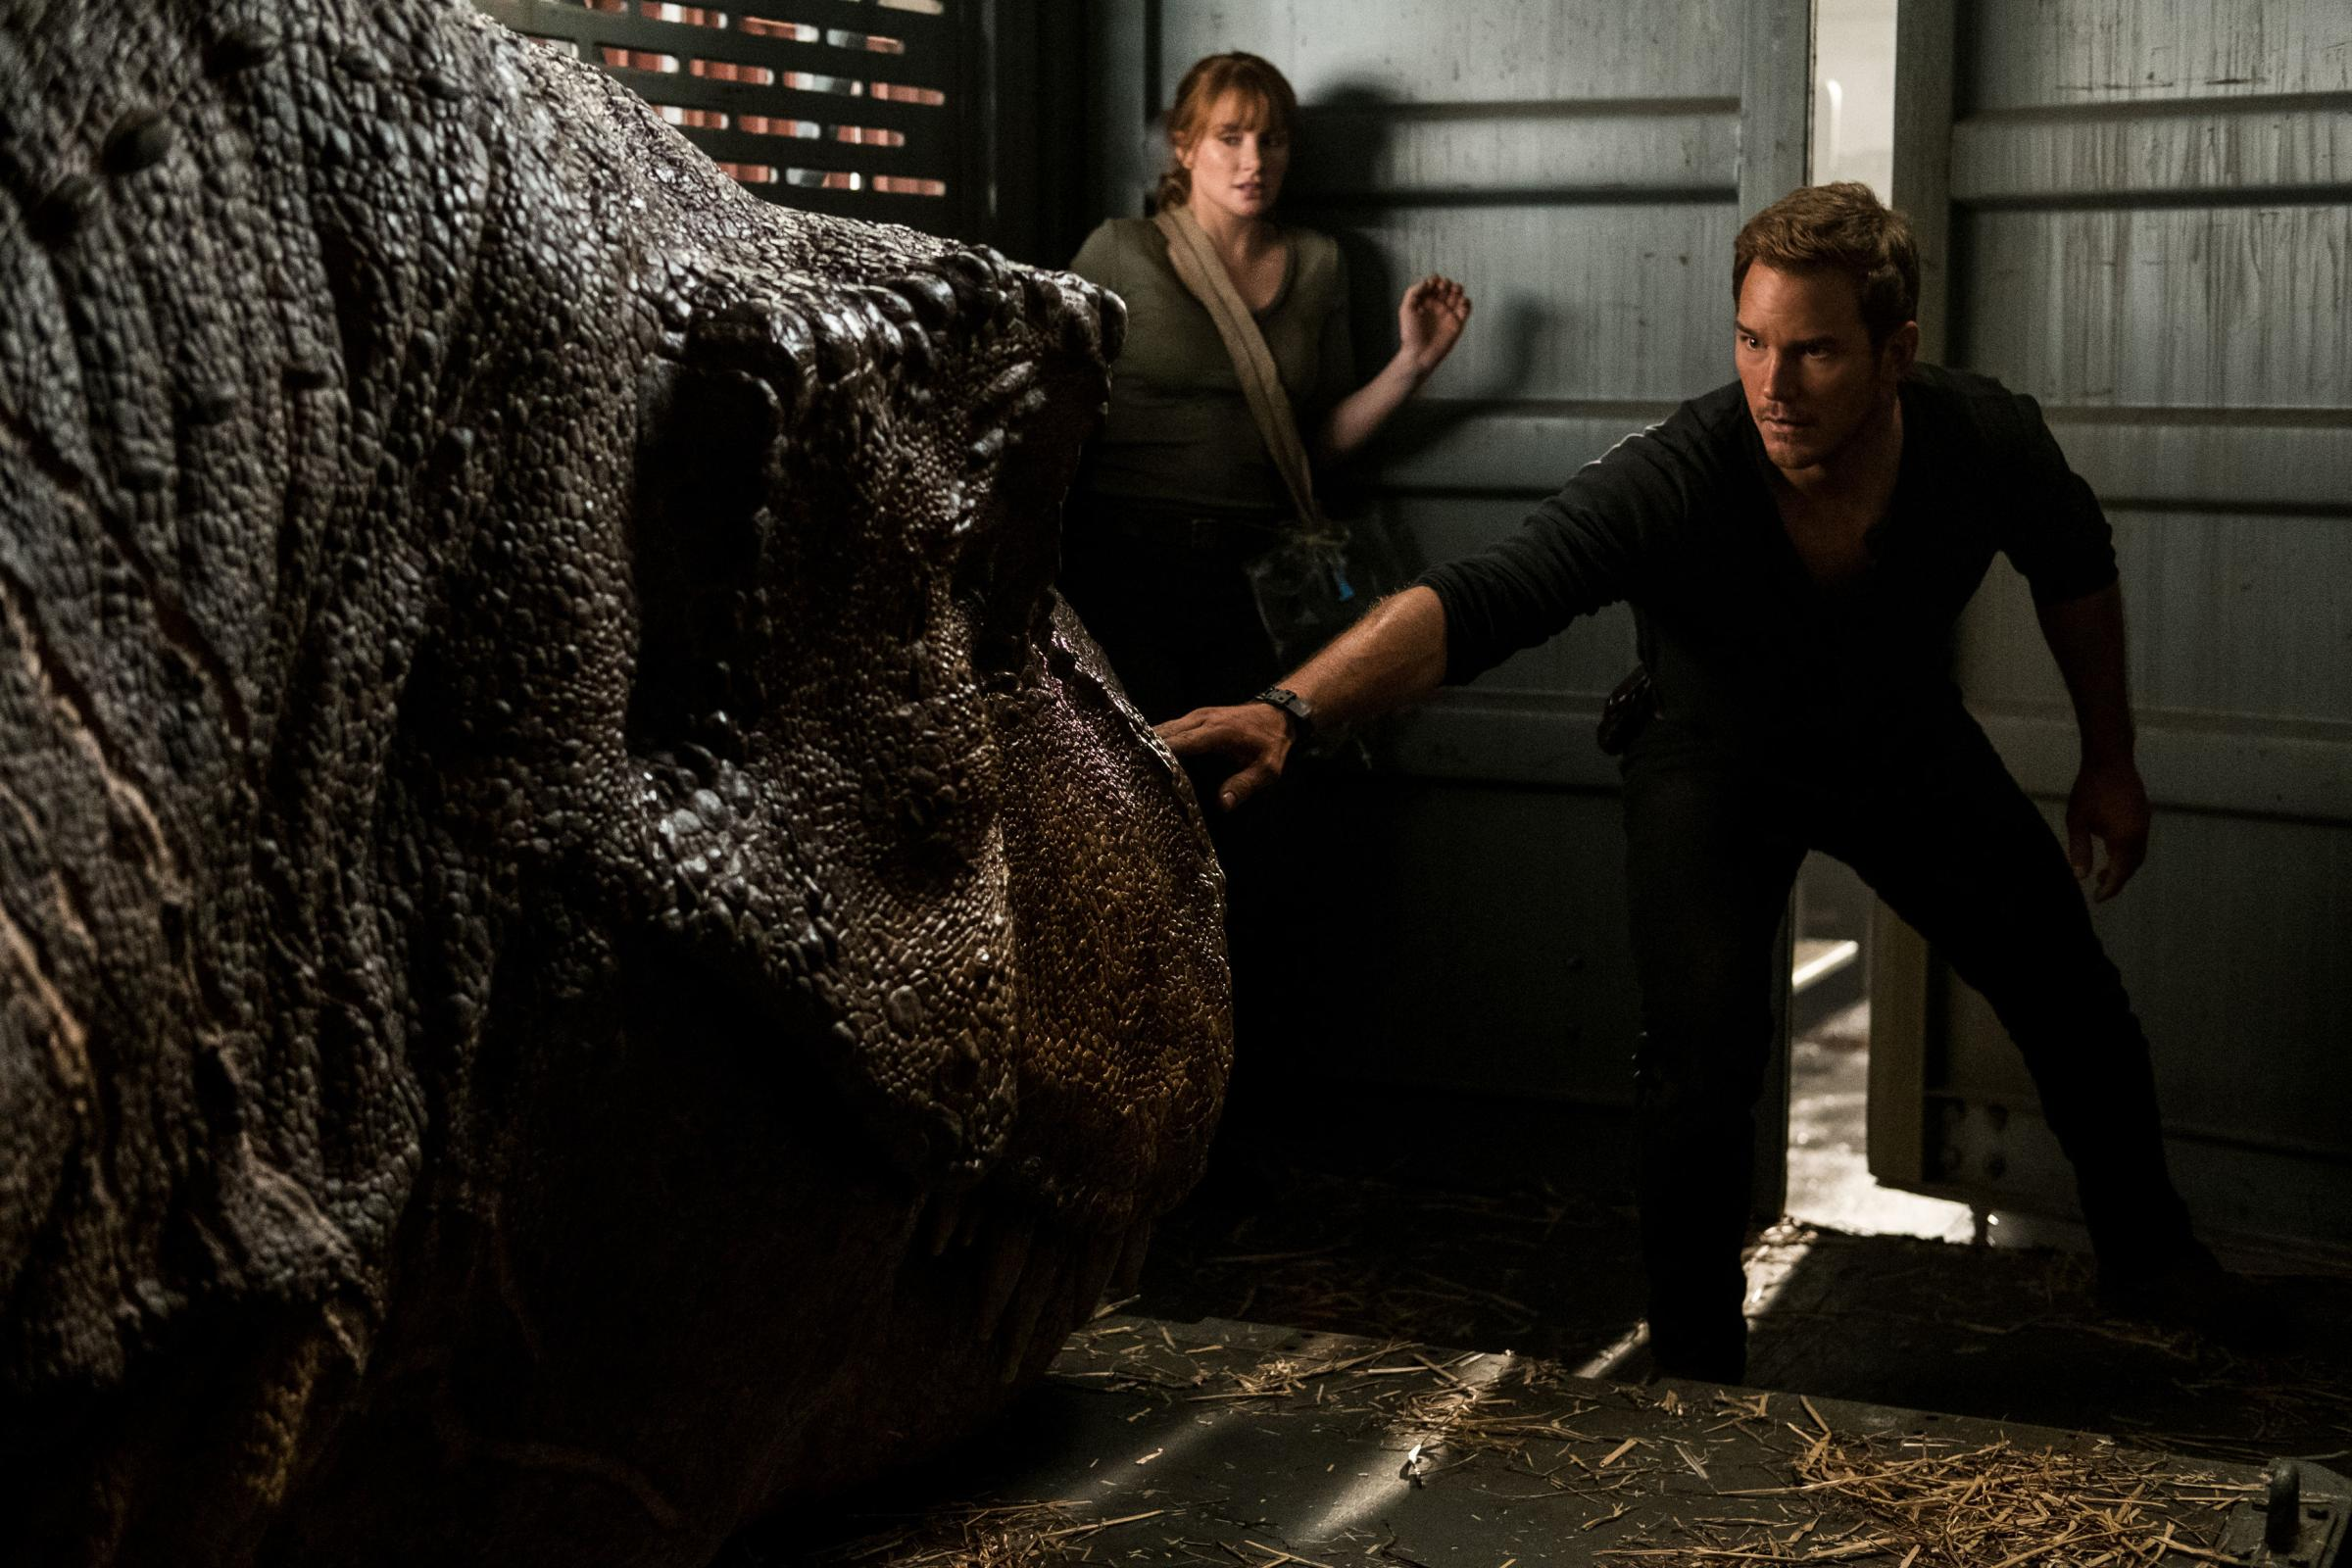 Undated film still handout from Jurassic World: Fallen Kingdom. Pictured: Bryce Dallas Howard as Claire Dearing and Chris Pratt as Owen Grady. See PA Feature SHOWBIZ Film Reviews. Picture credit should read: PA Photo/Universal Pictures/Giles Keyte. WARNIN